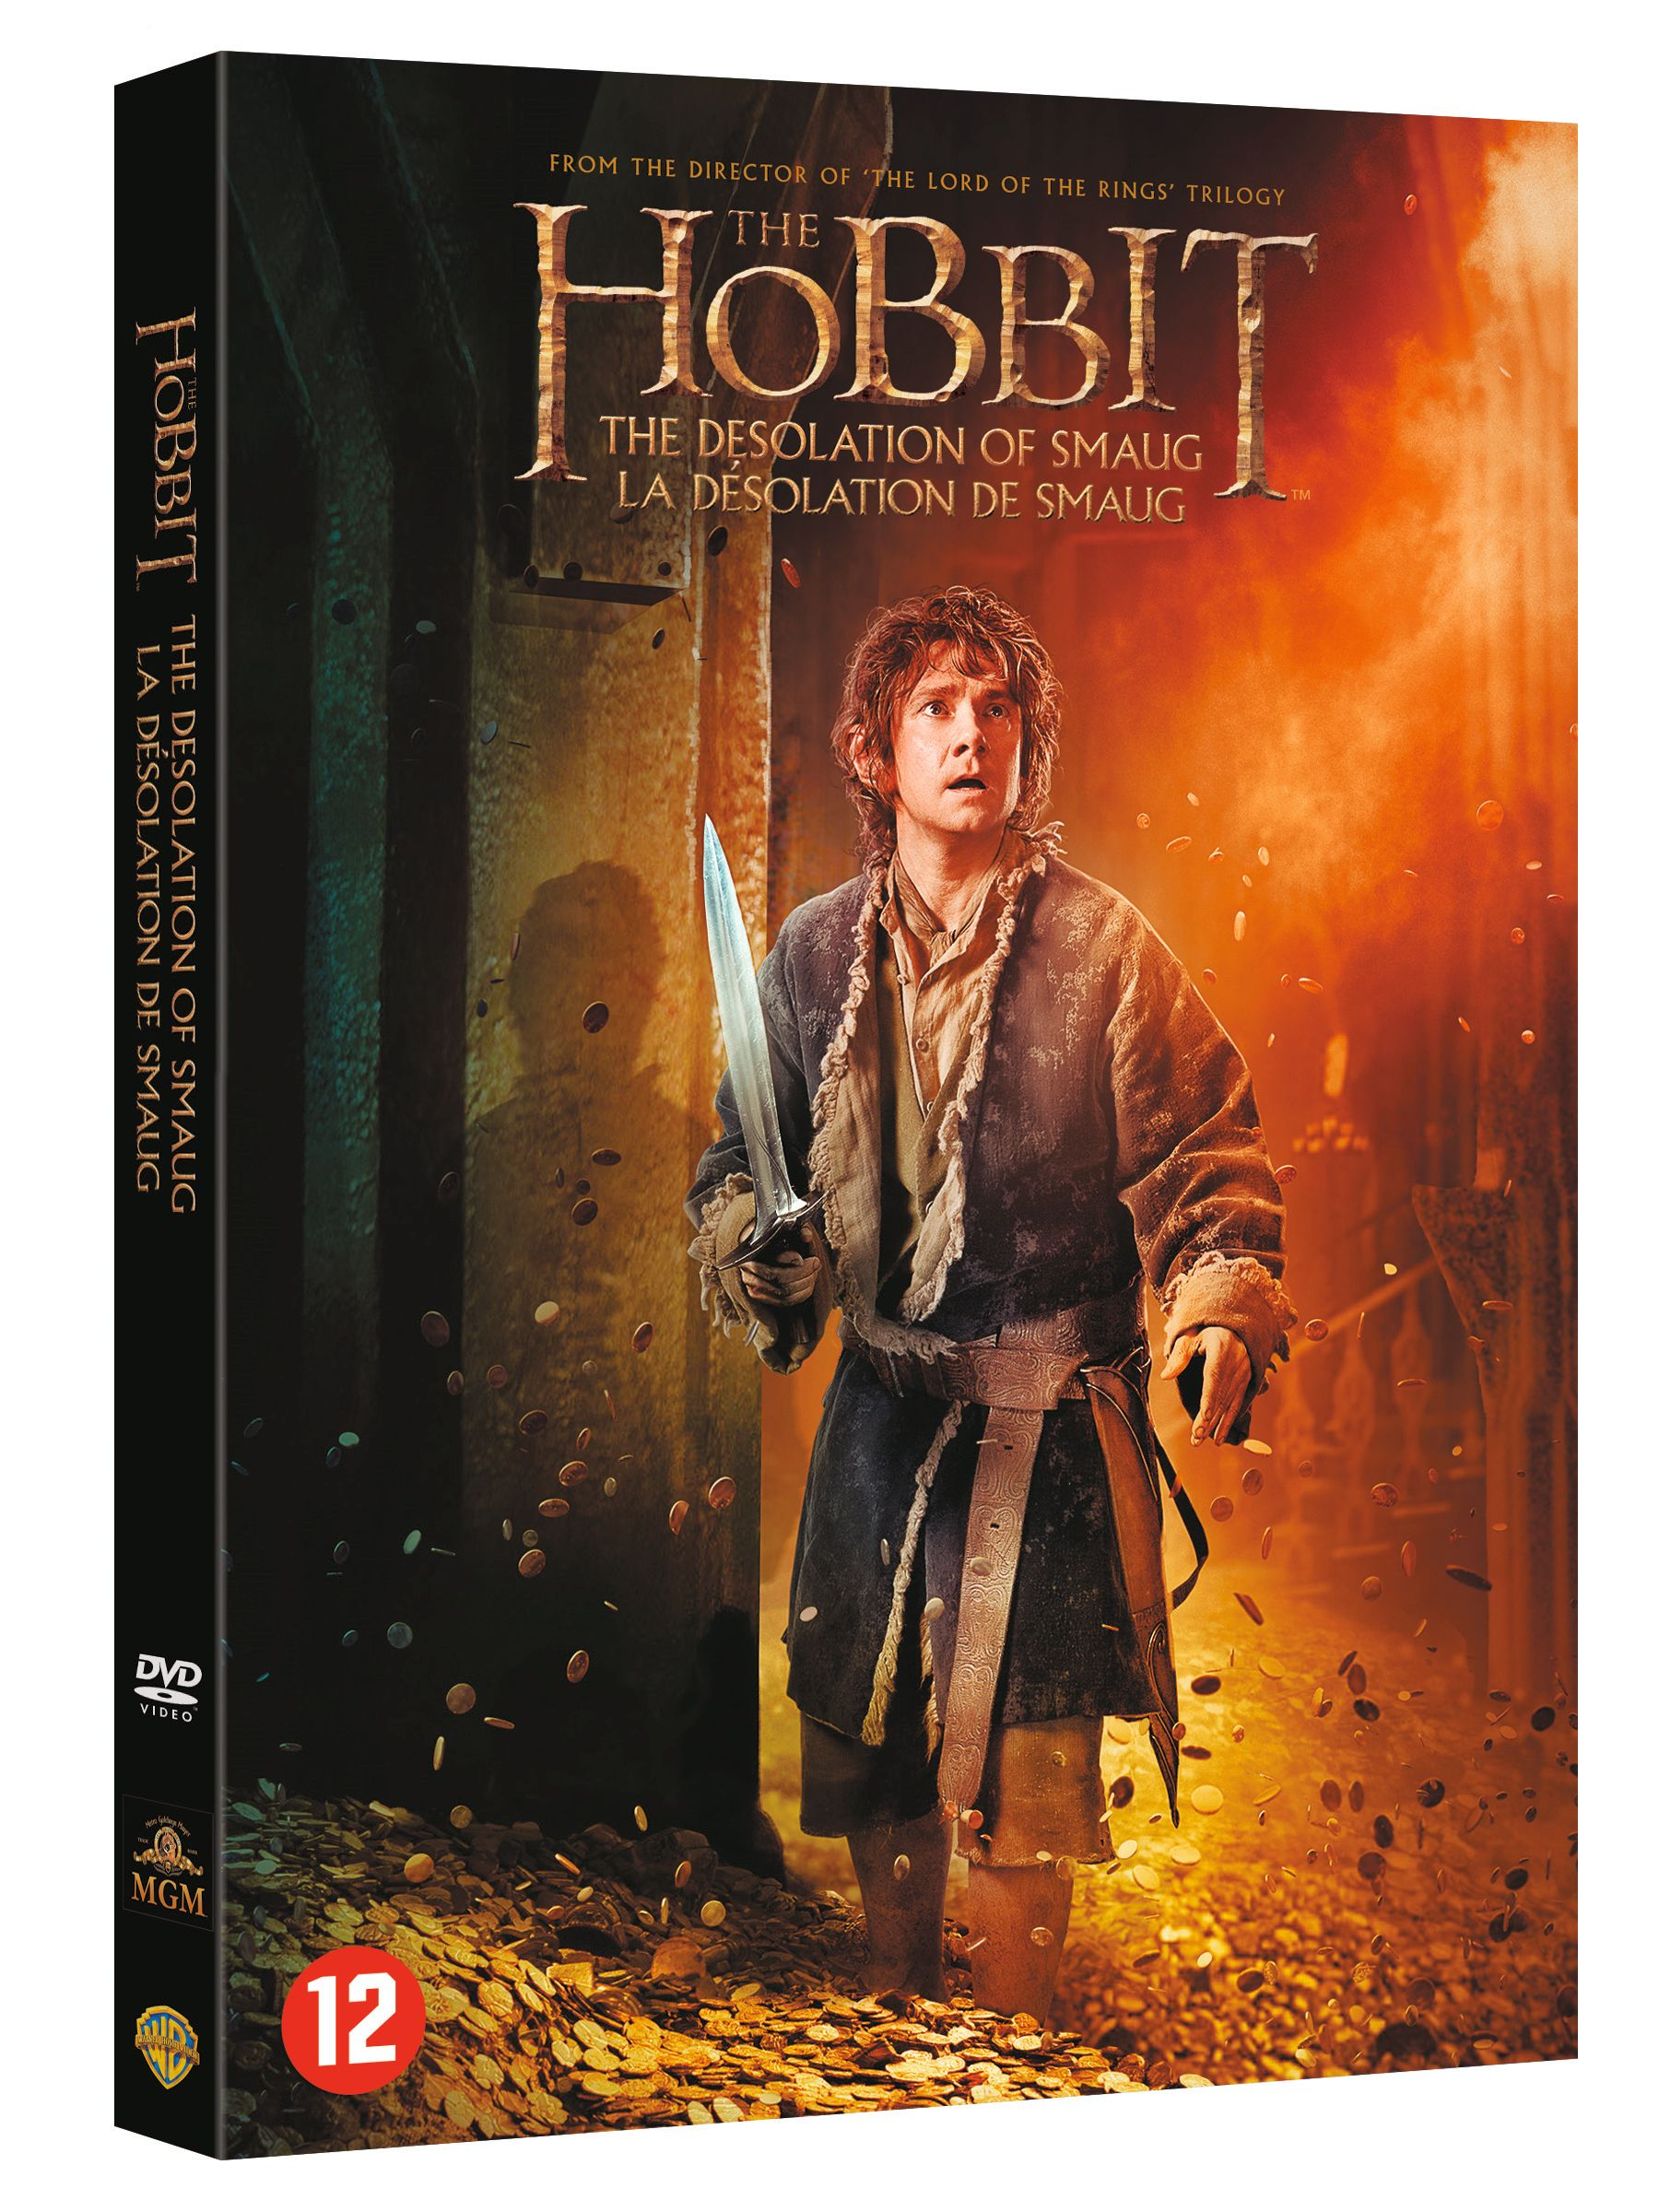 bring home the hobbit: the desolation of smaug and take part in an